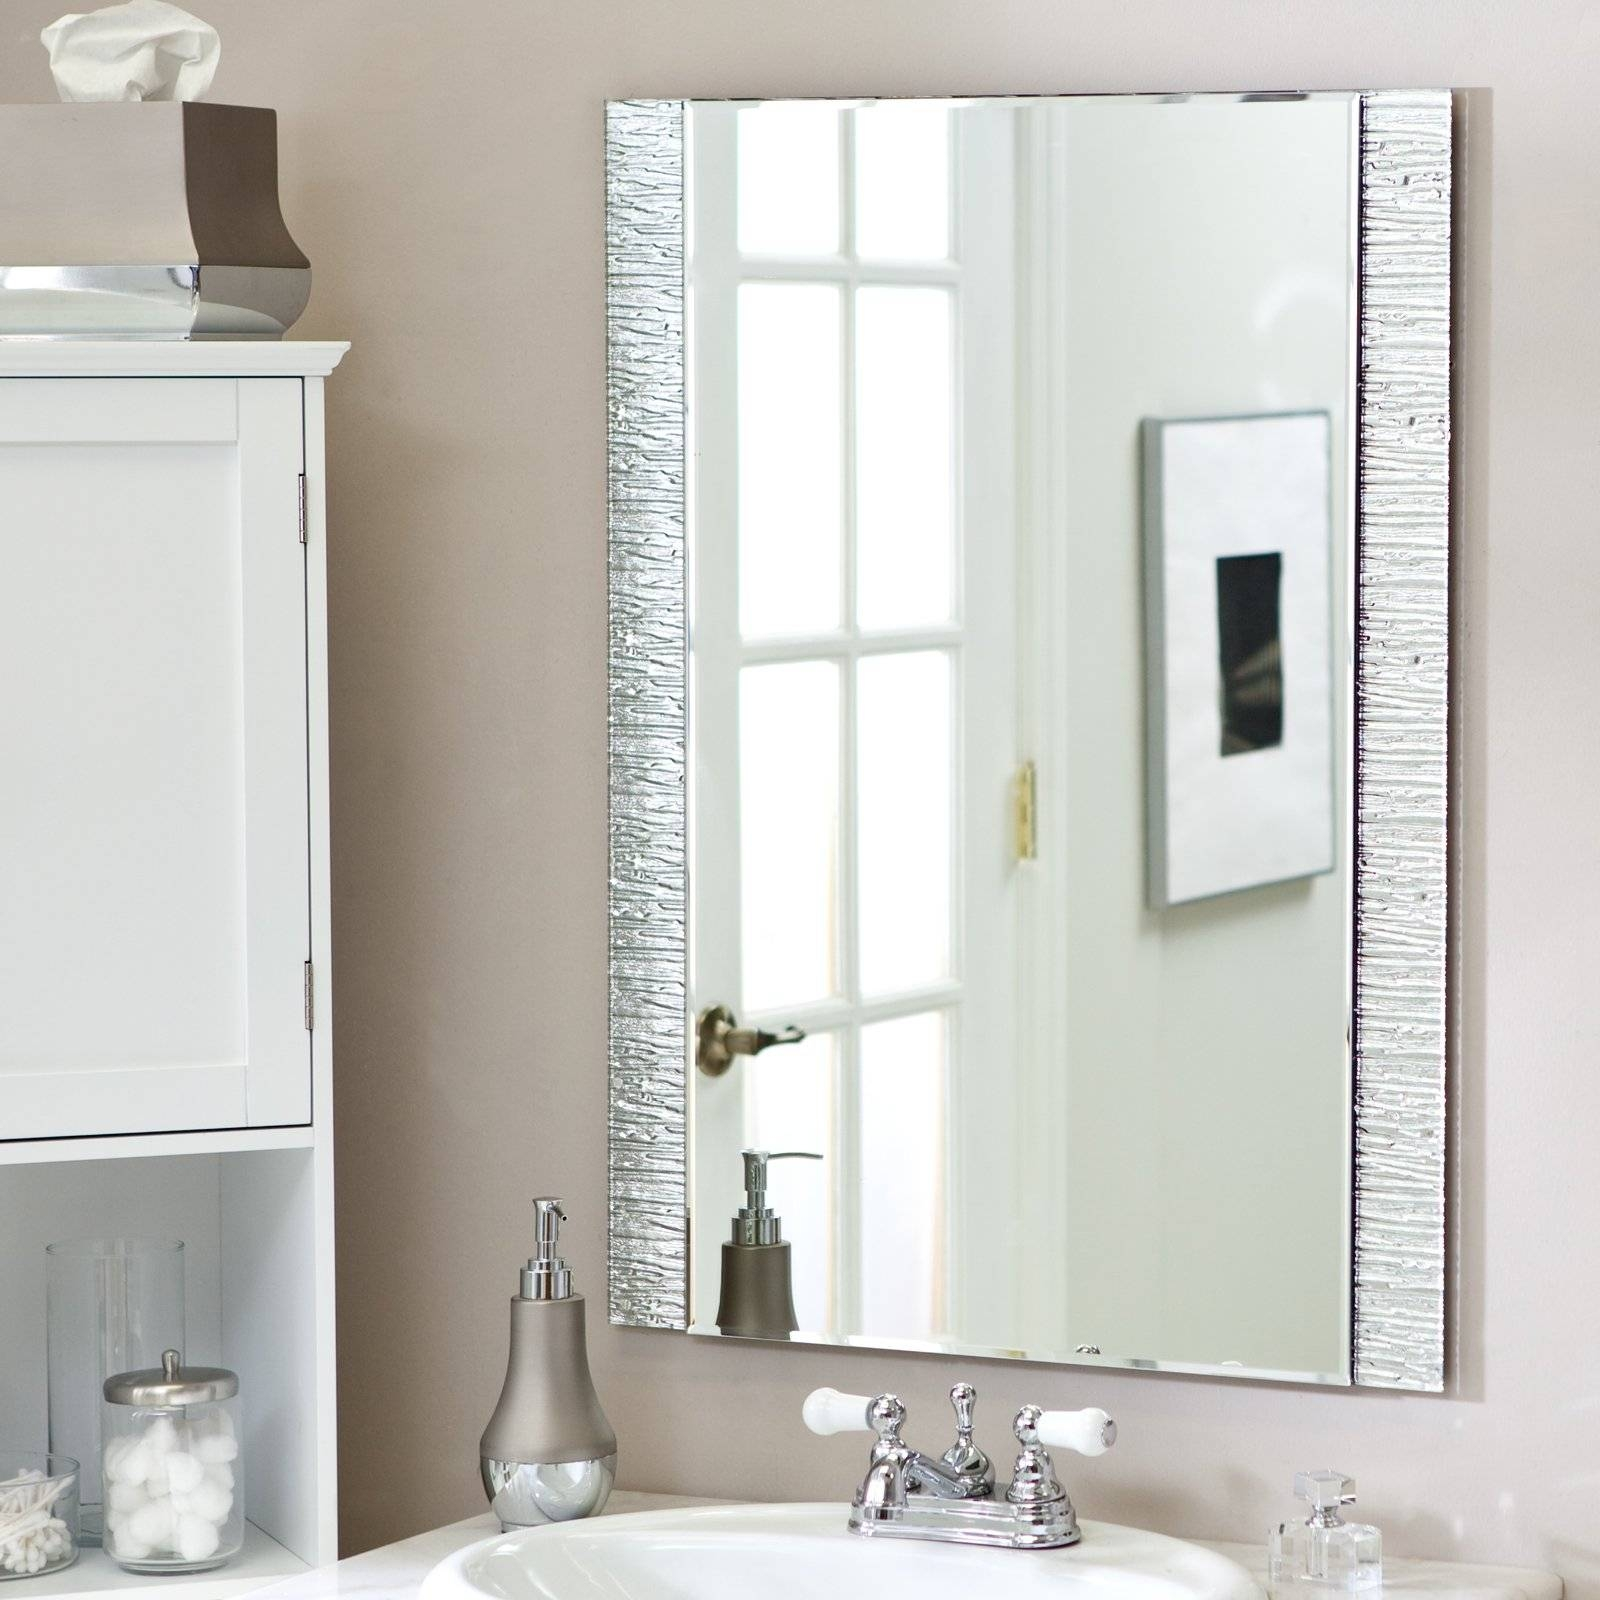 Wall Mirrors for Large Frameless Bathroom Mirrors (Image 15 of 15)